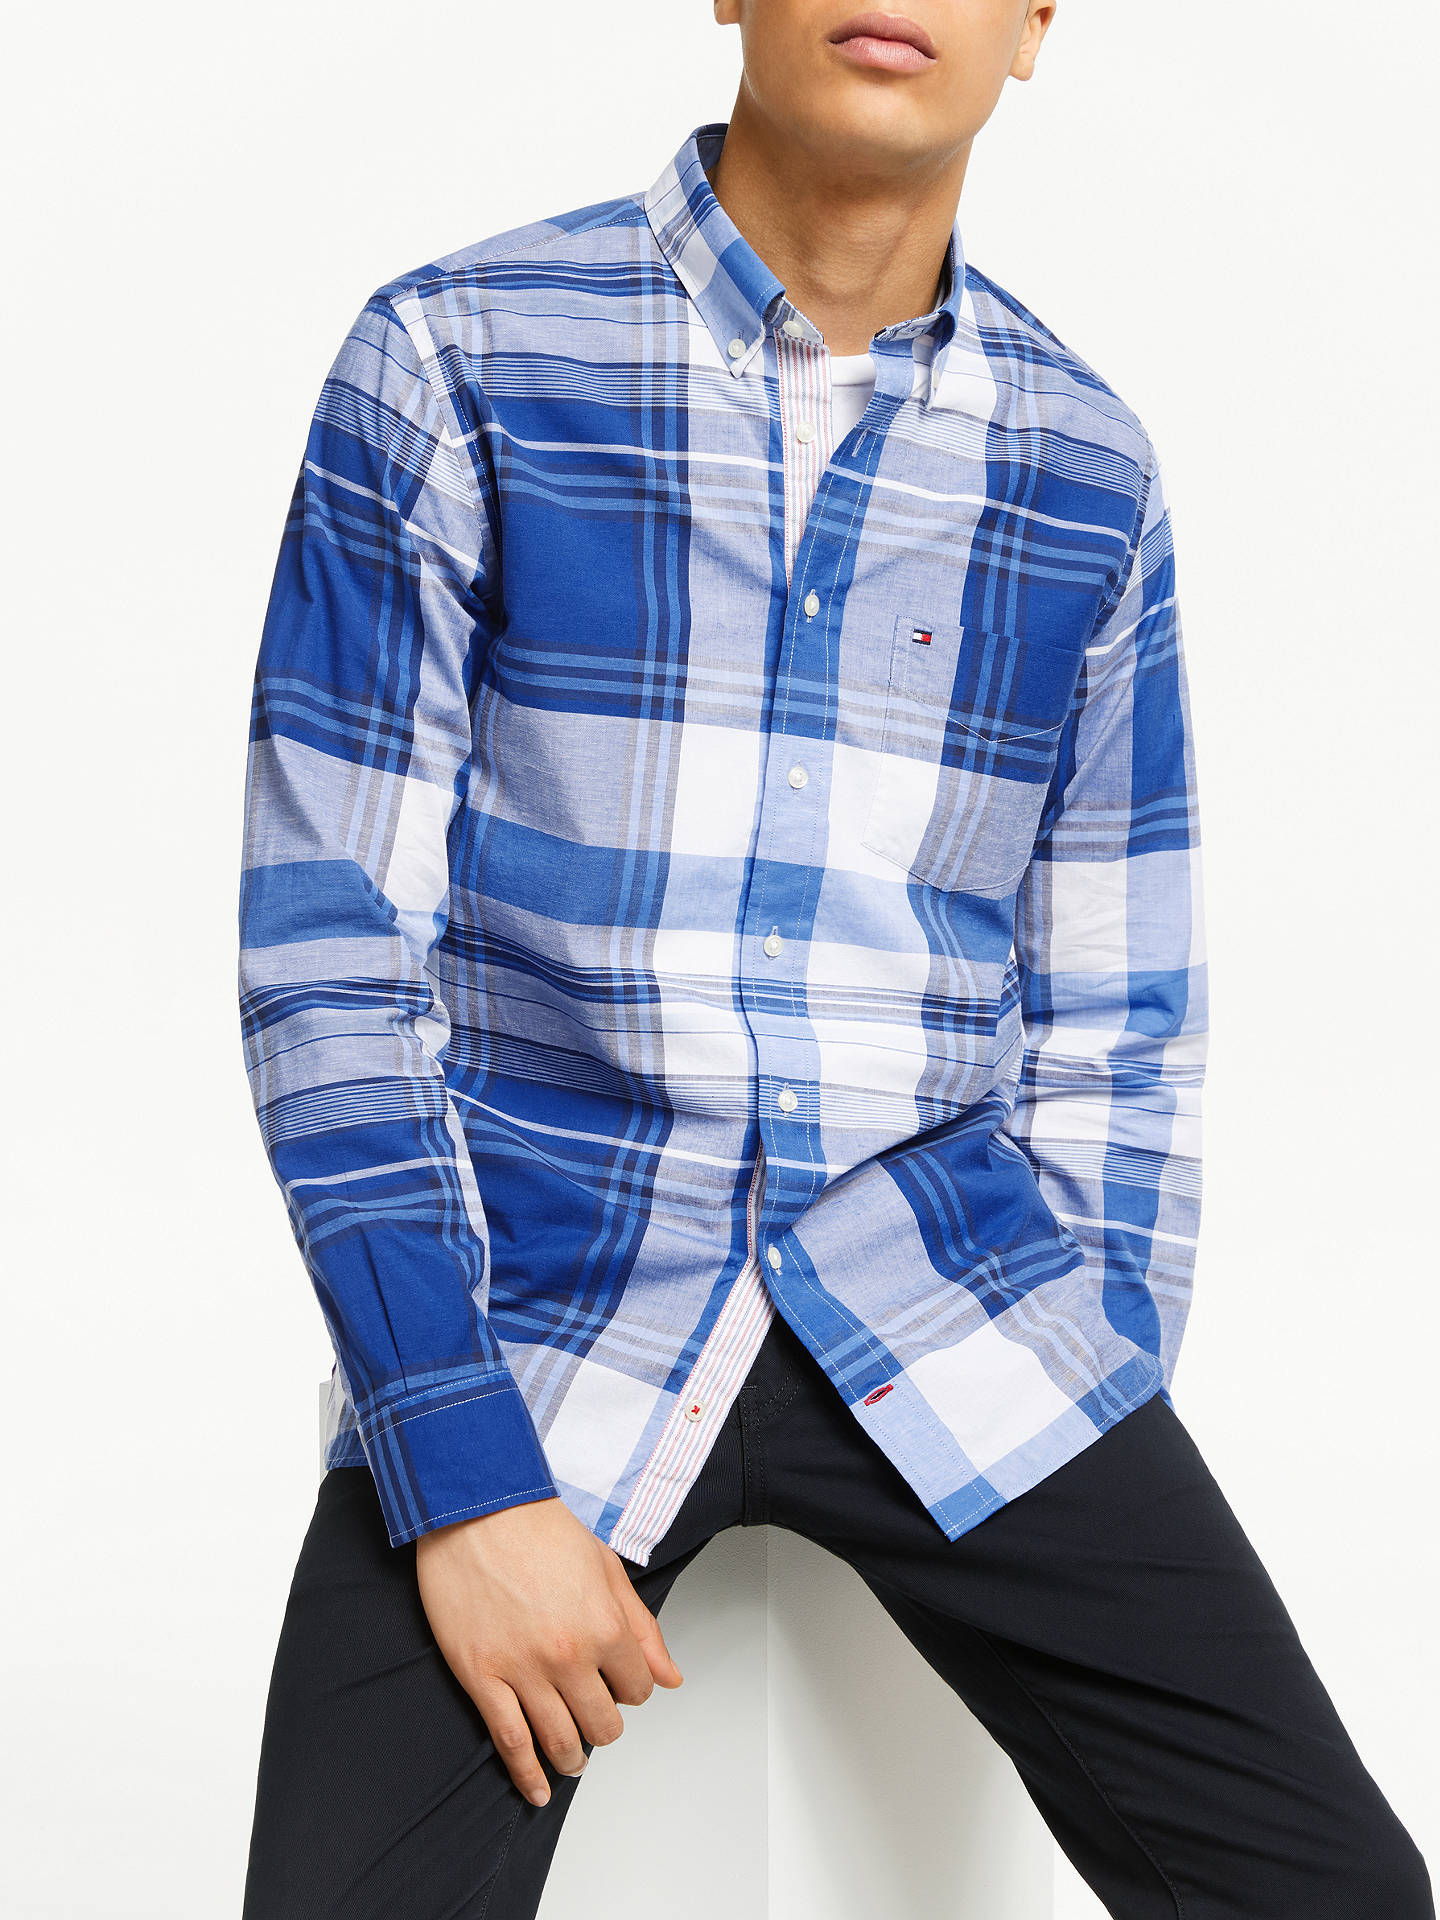 99860f228 Buy Tommy Hilfiger Large Scale Check Shirt, Blue, S Online at johnlewis.com  ...